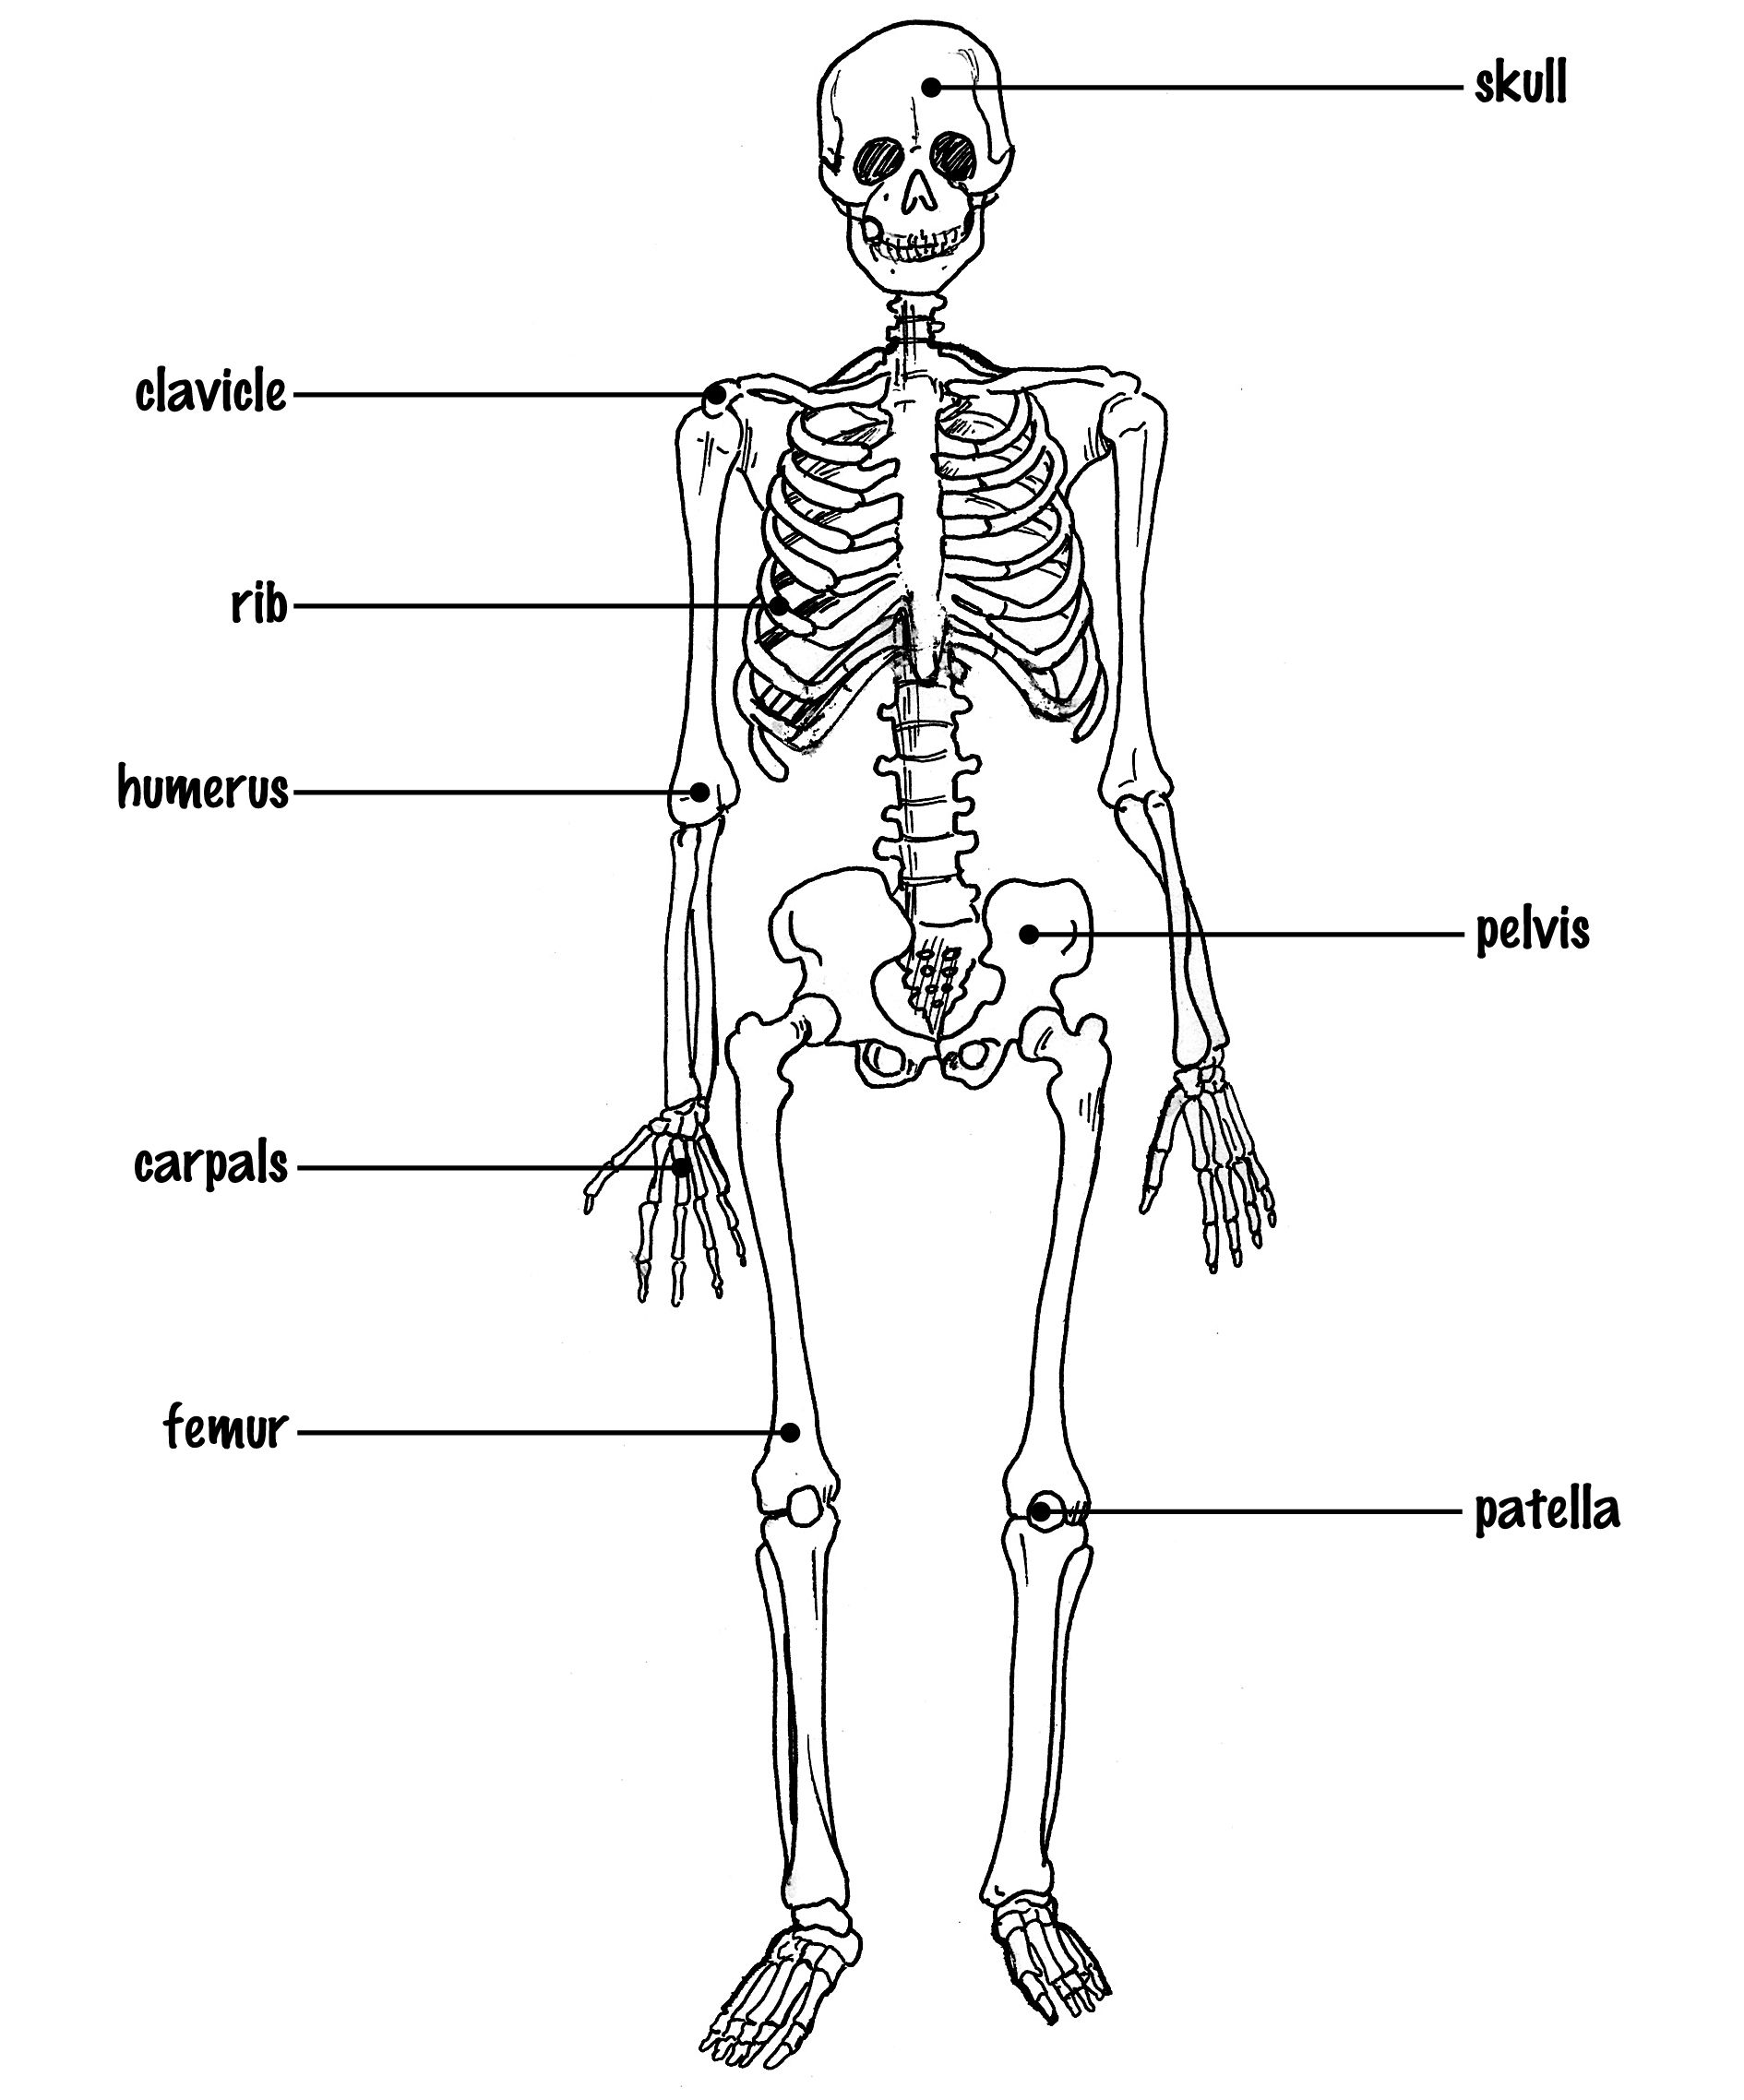 The Skeletal System Diagram Labeled The Skeletal System